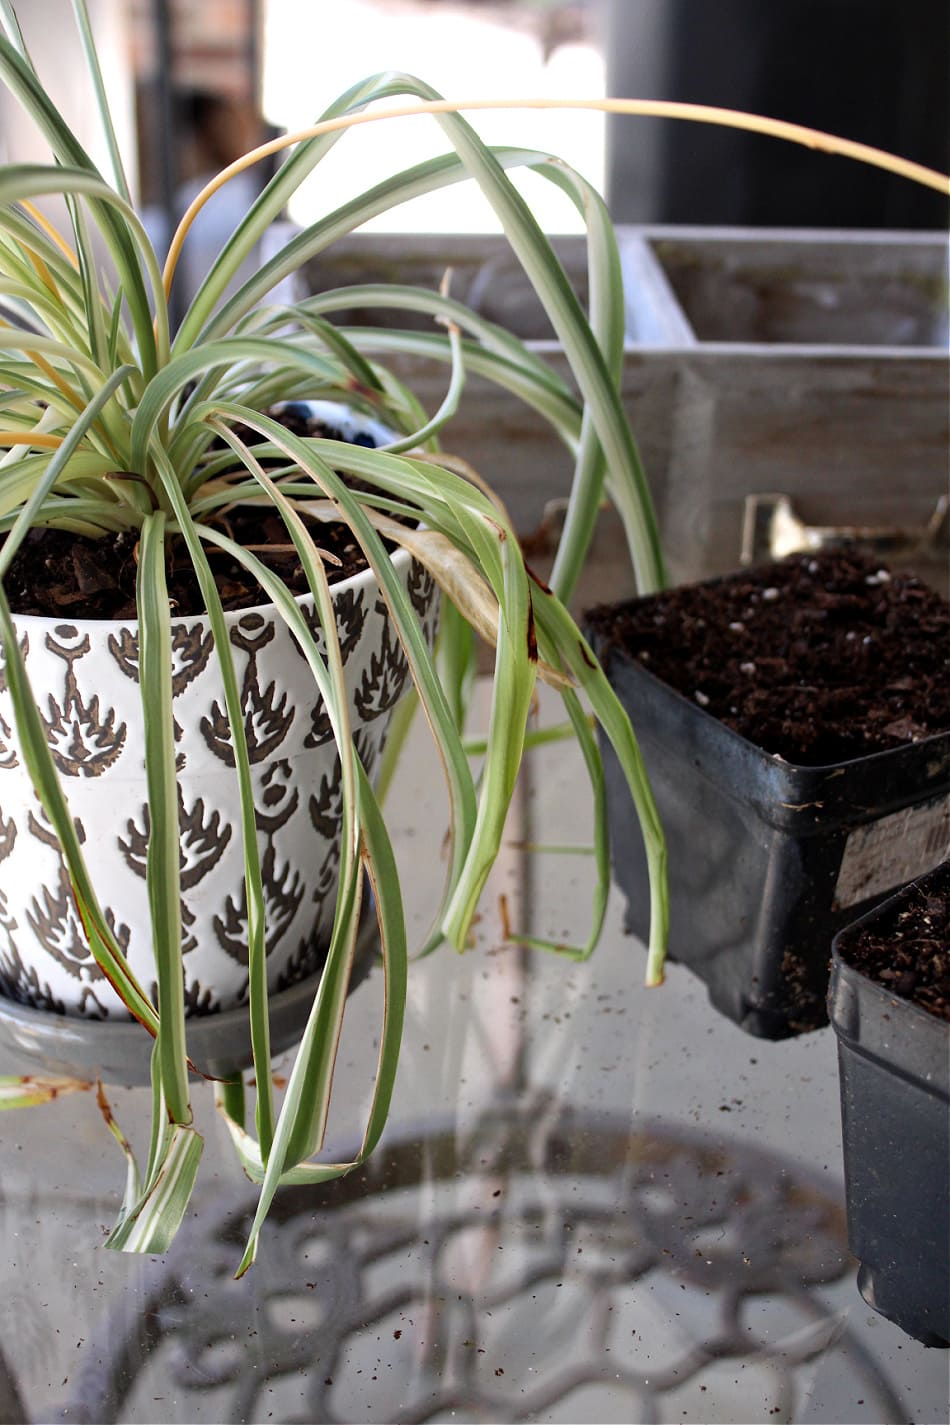 spider plant next to dirt-filled pots